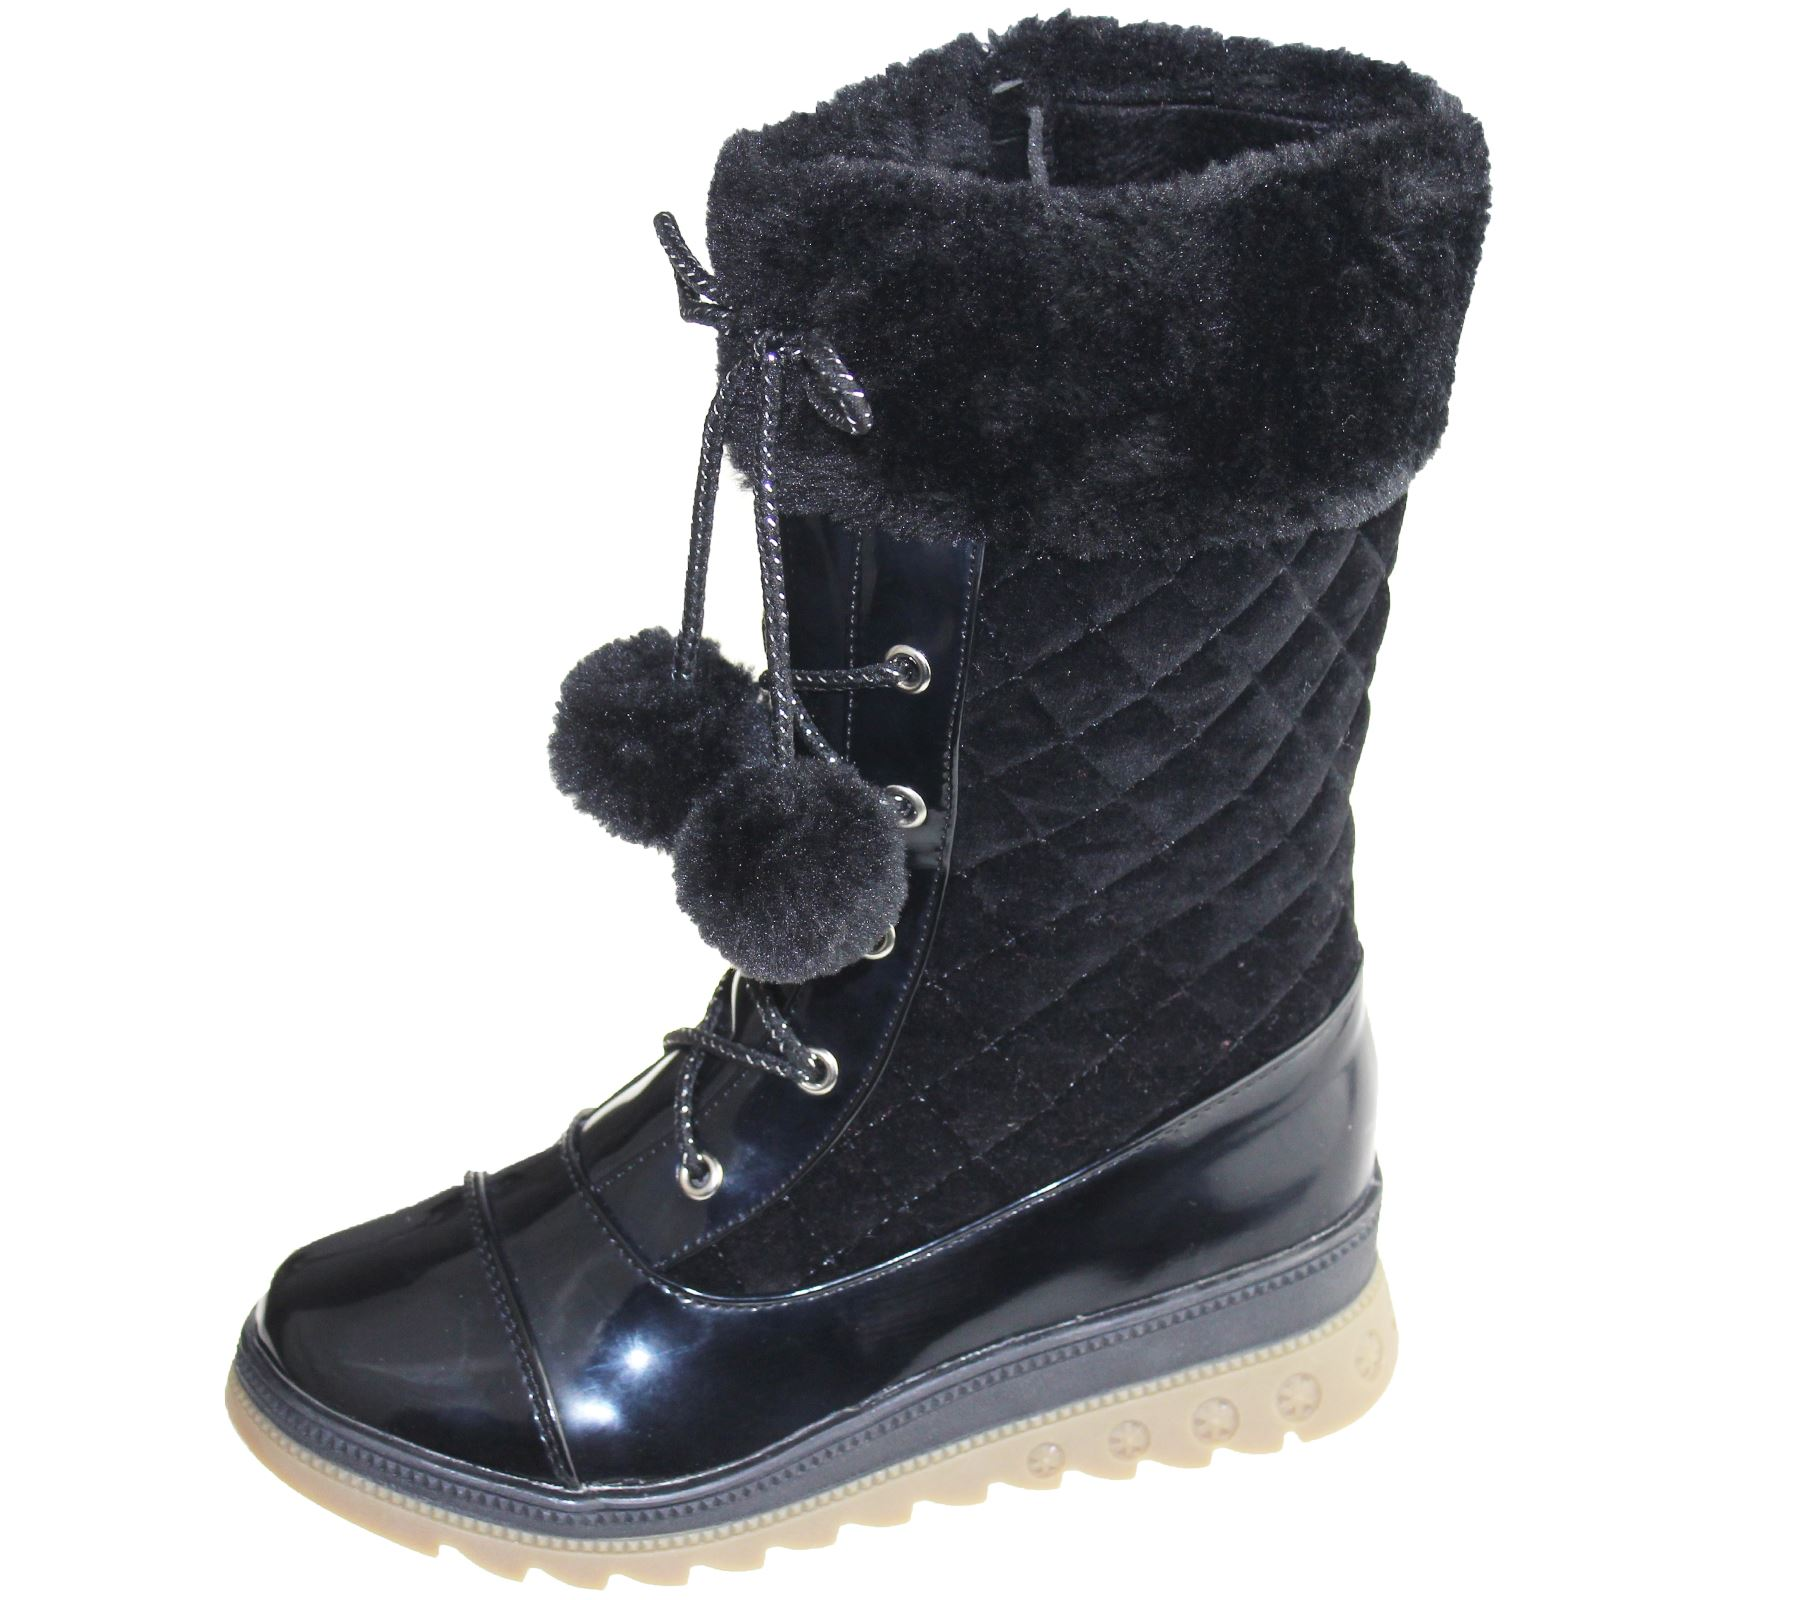 Girls Warm Lined Boots Quilted Winter Warm Christmas High